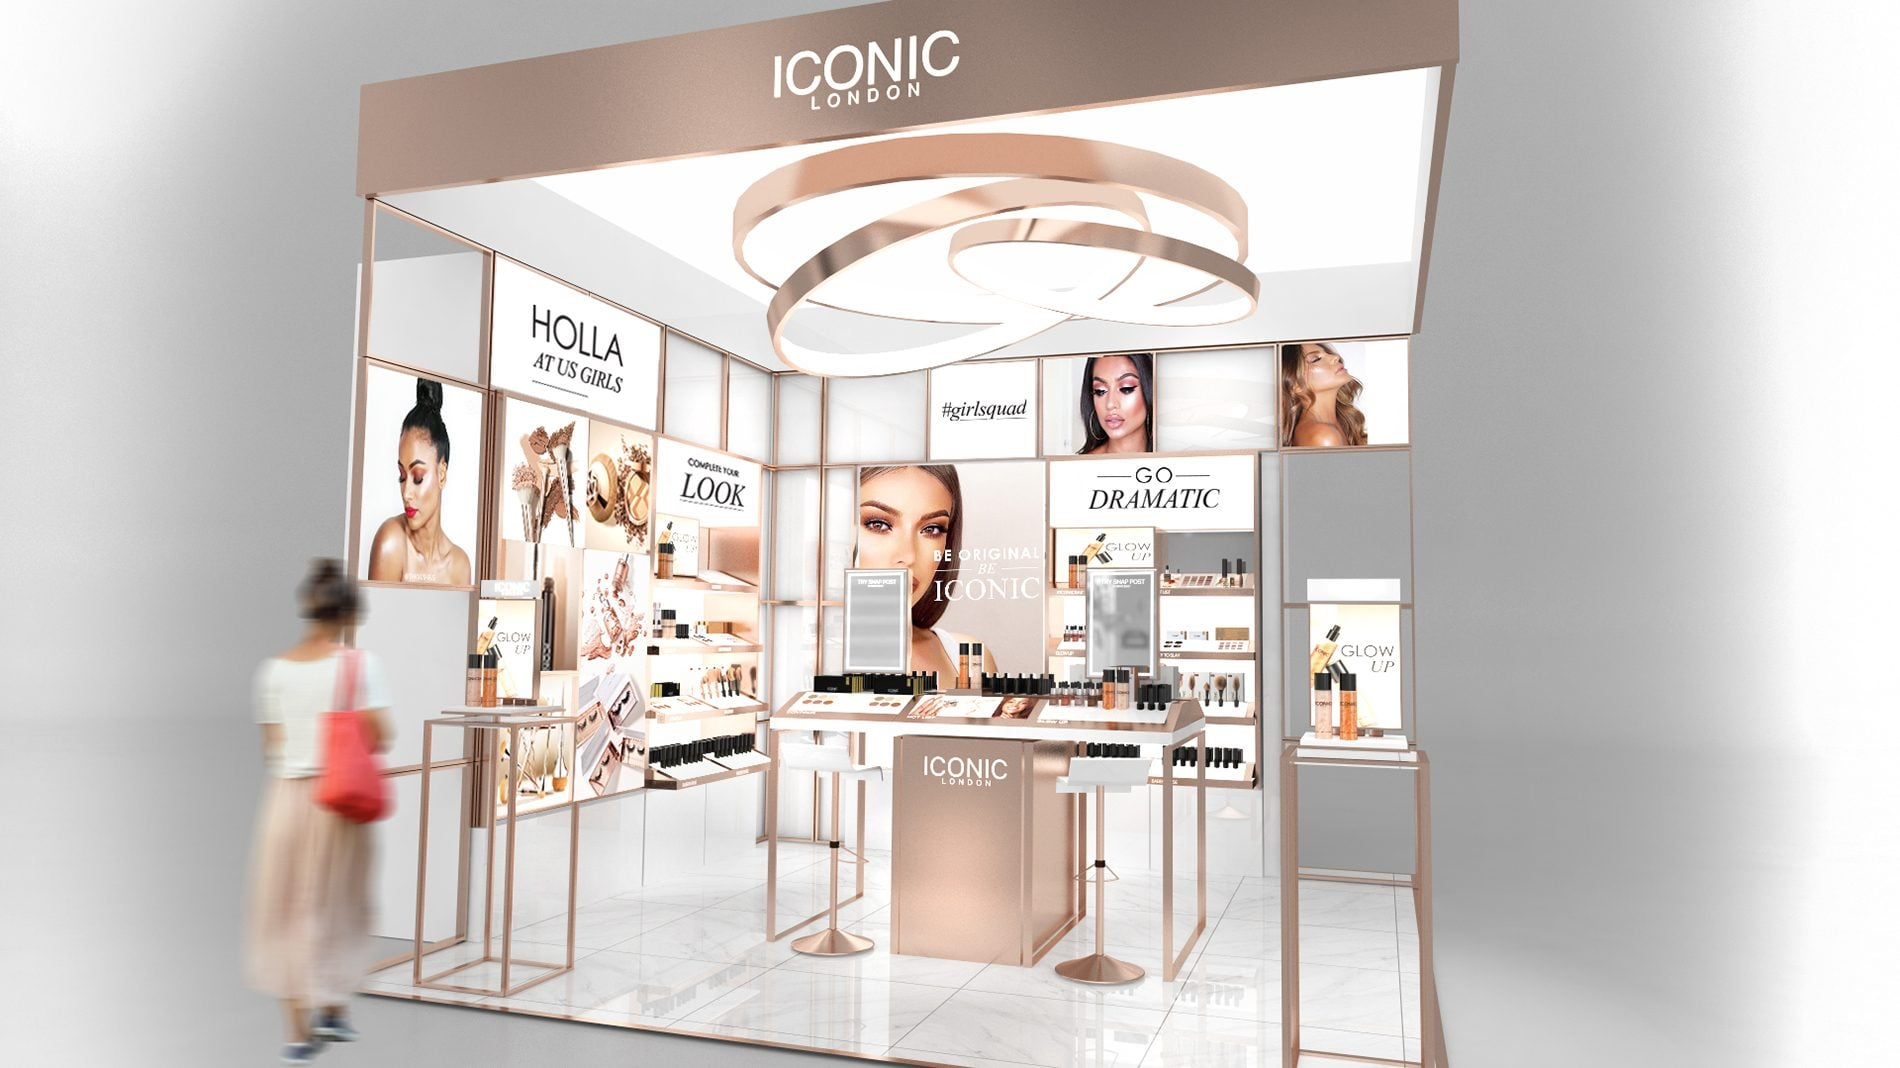 iconic london retail design concept visuals